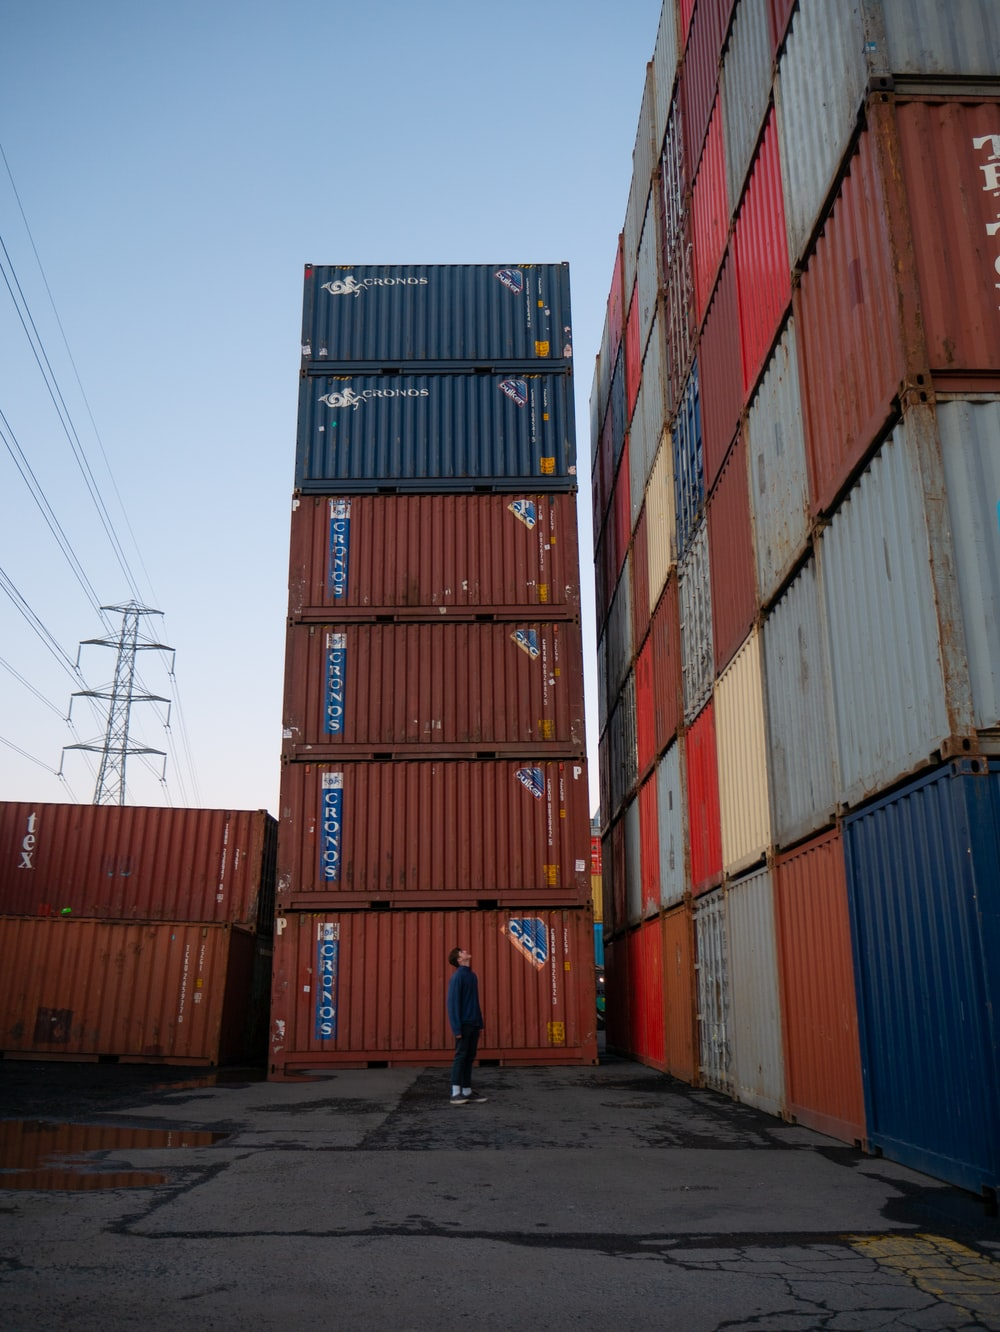 man in blue shirt walking near red cargo containers during daytime